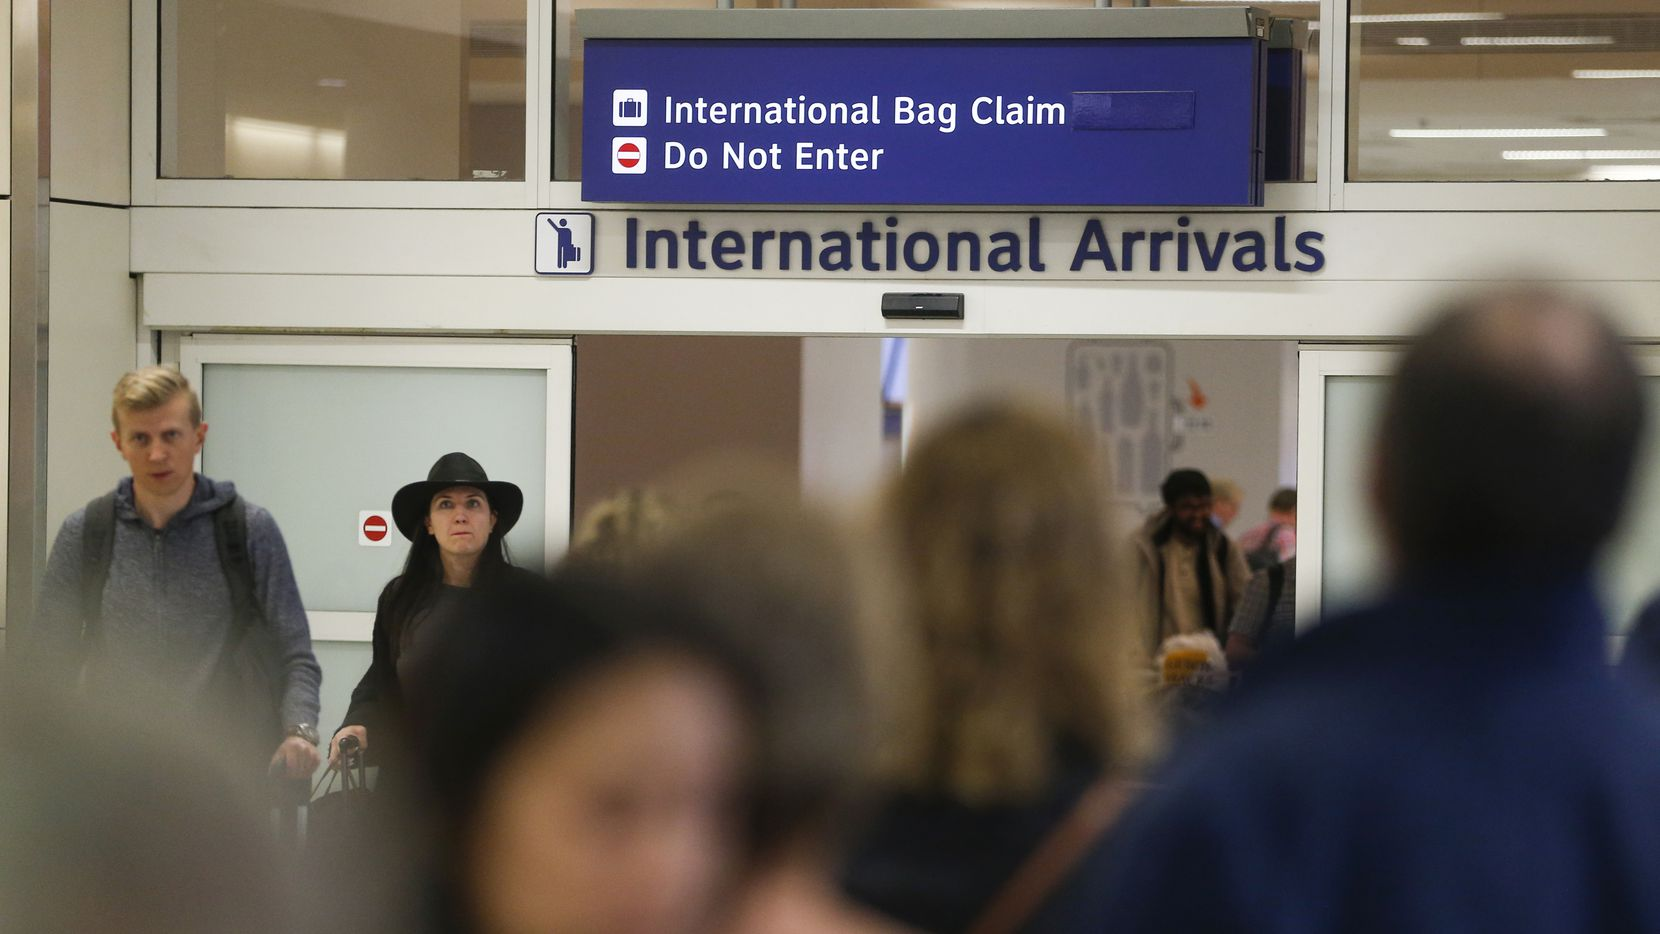 Travelers, some seen wearing protective masks, arrive in the international arrivals area of DFW International Airport on Tuesday, Jan. 28, 2020. DFW suspended all direct flights to and from China last week according to a DFW press release.